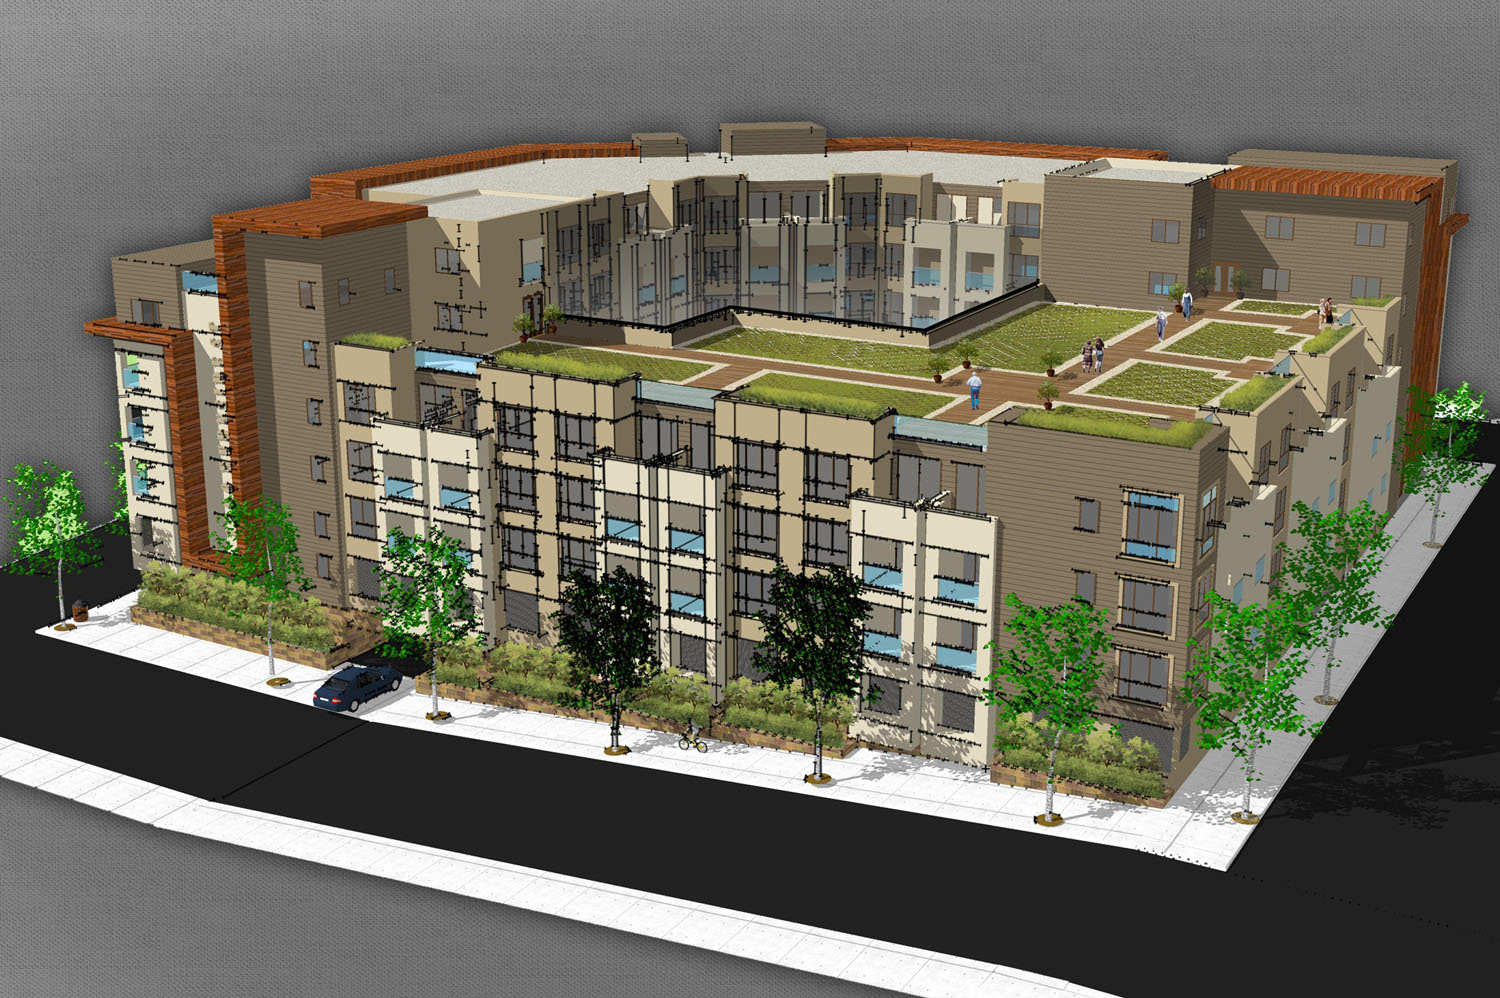 Ktgy Designed 29 Million Mixed Use Senior Housing